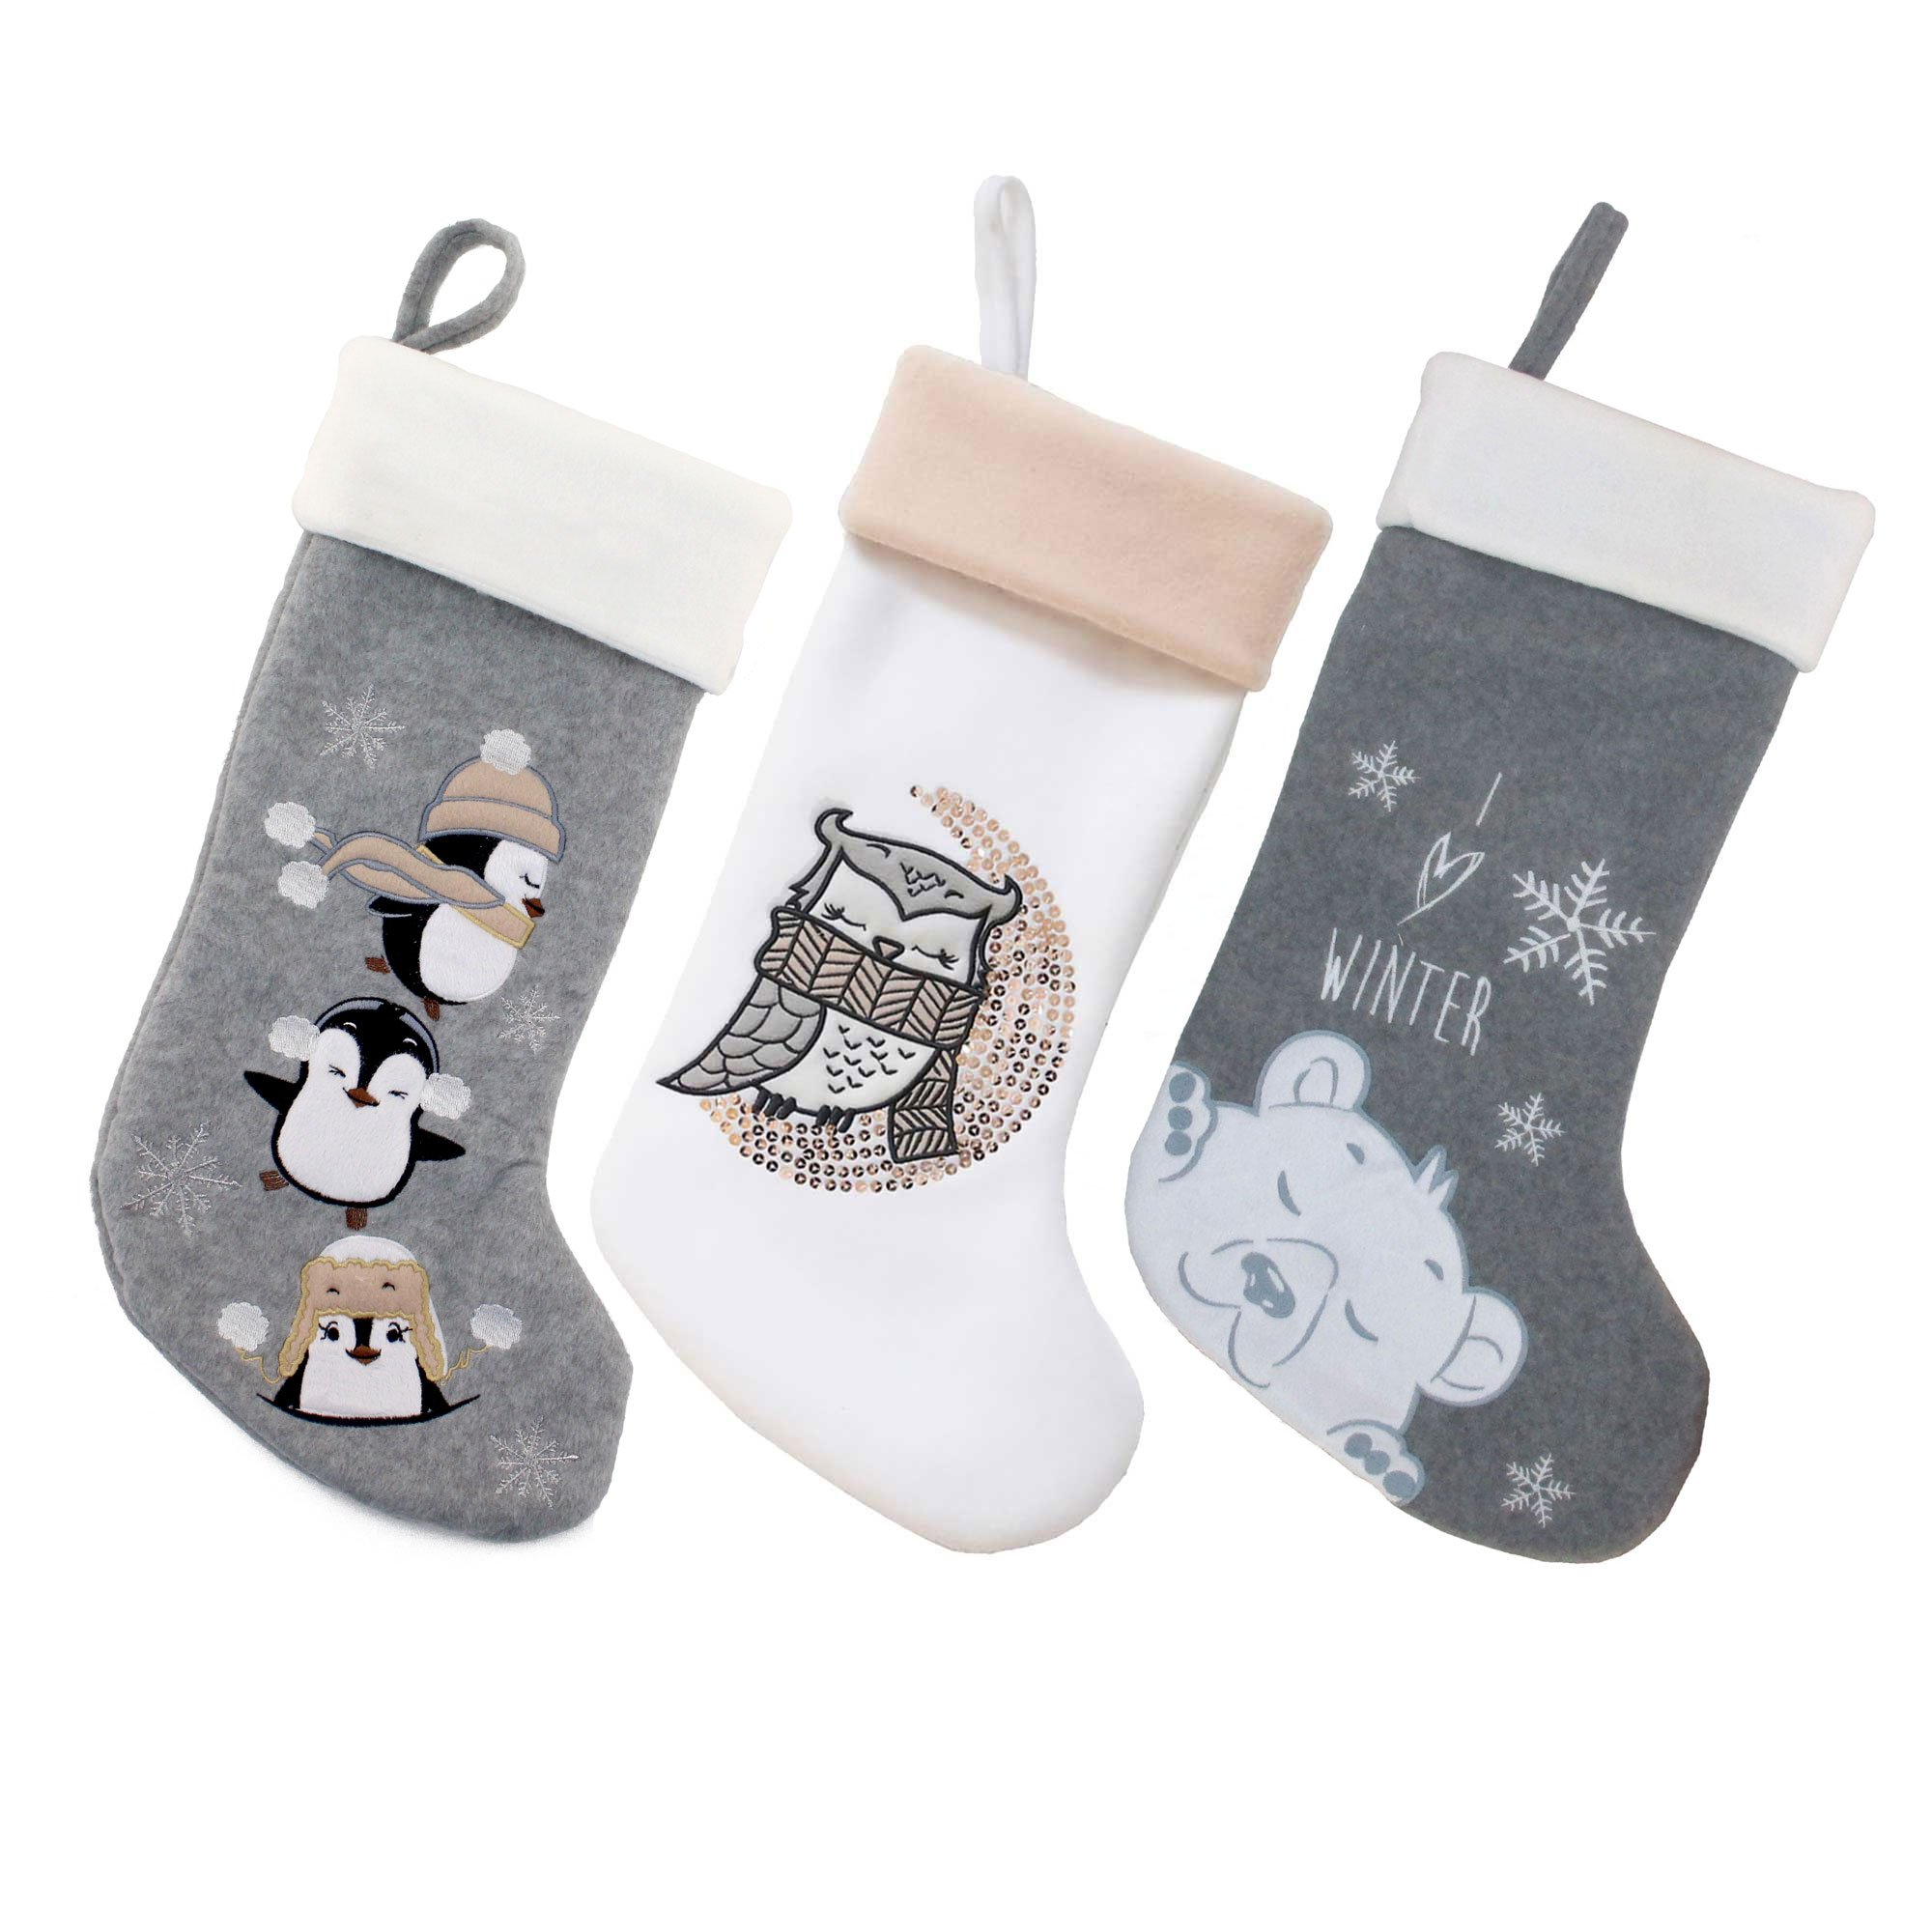 BambooMN 3 Pcs Set 18'' Classic Hand Embroidered Sequined Cute Animal Chirstmas Stocking, Assortment 96